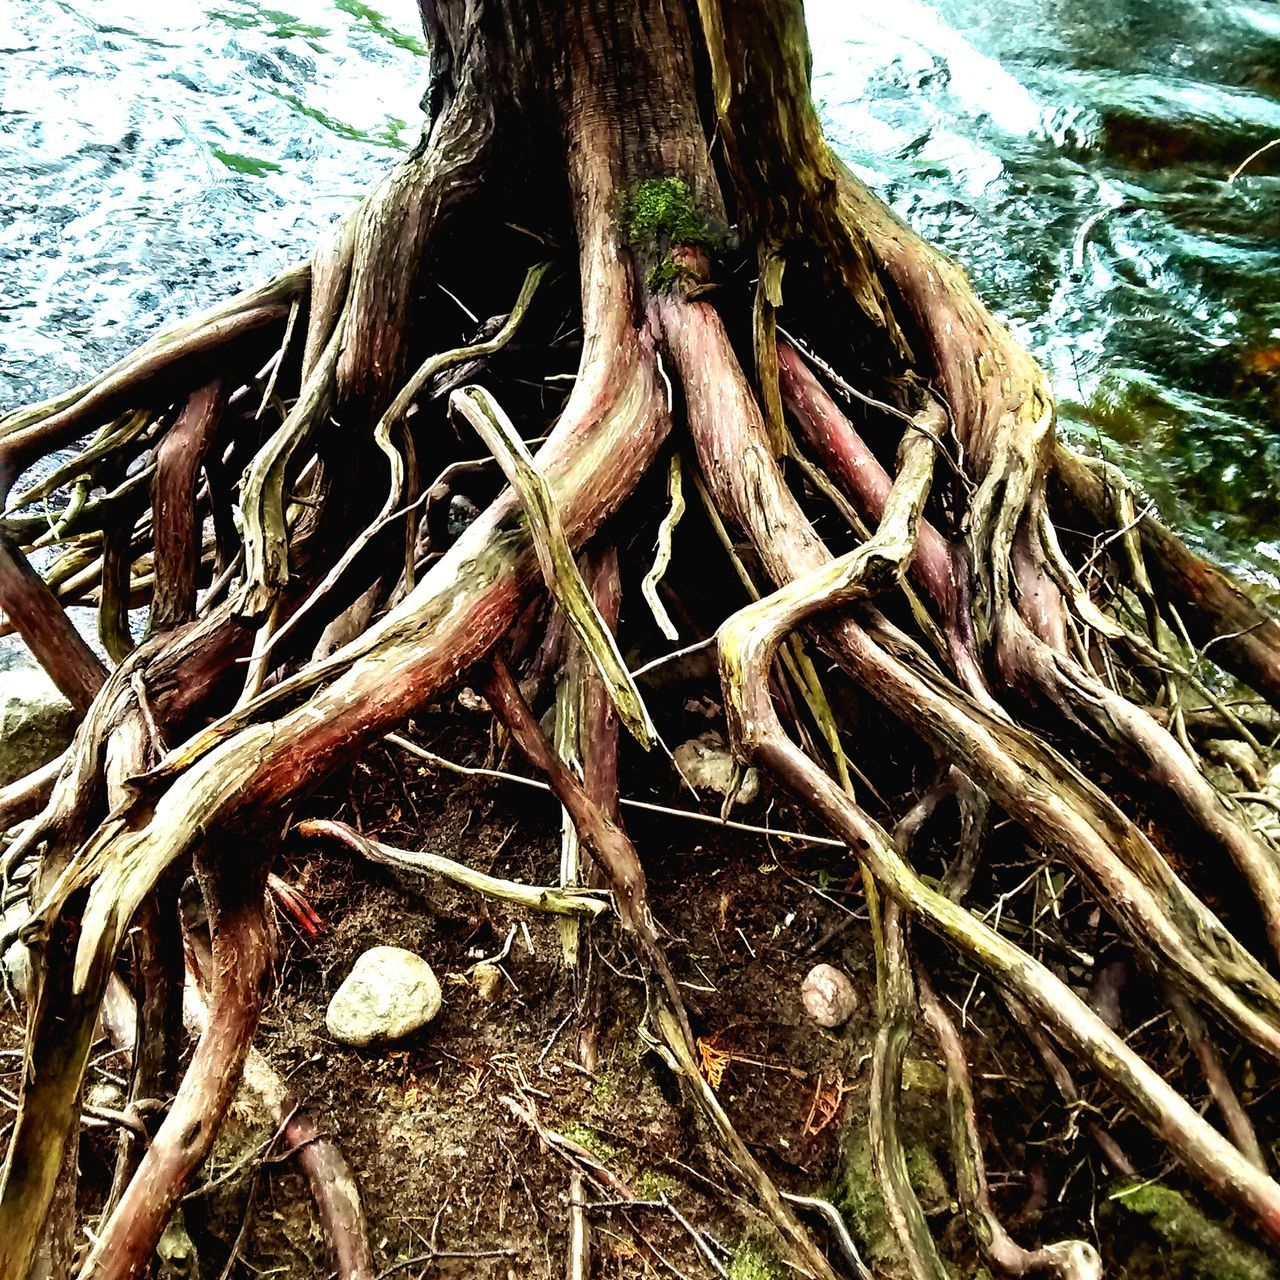 root, day, nature, tree, outdoors, no people, high angle view, water, tree trunk, close-up, branch